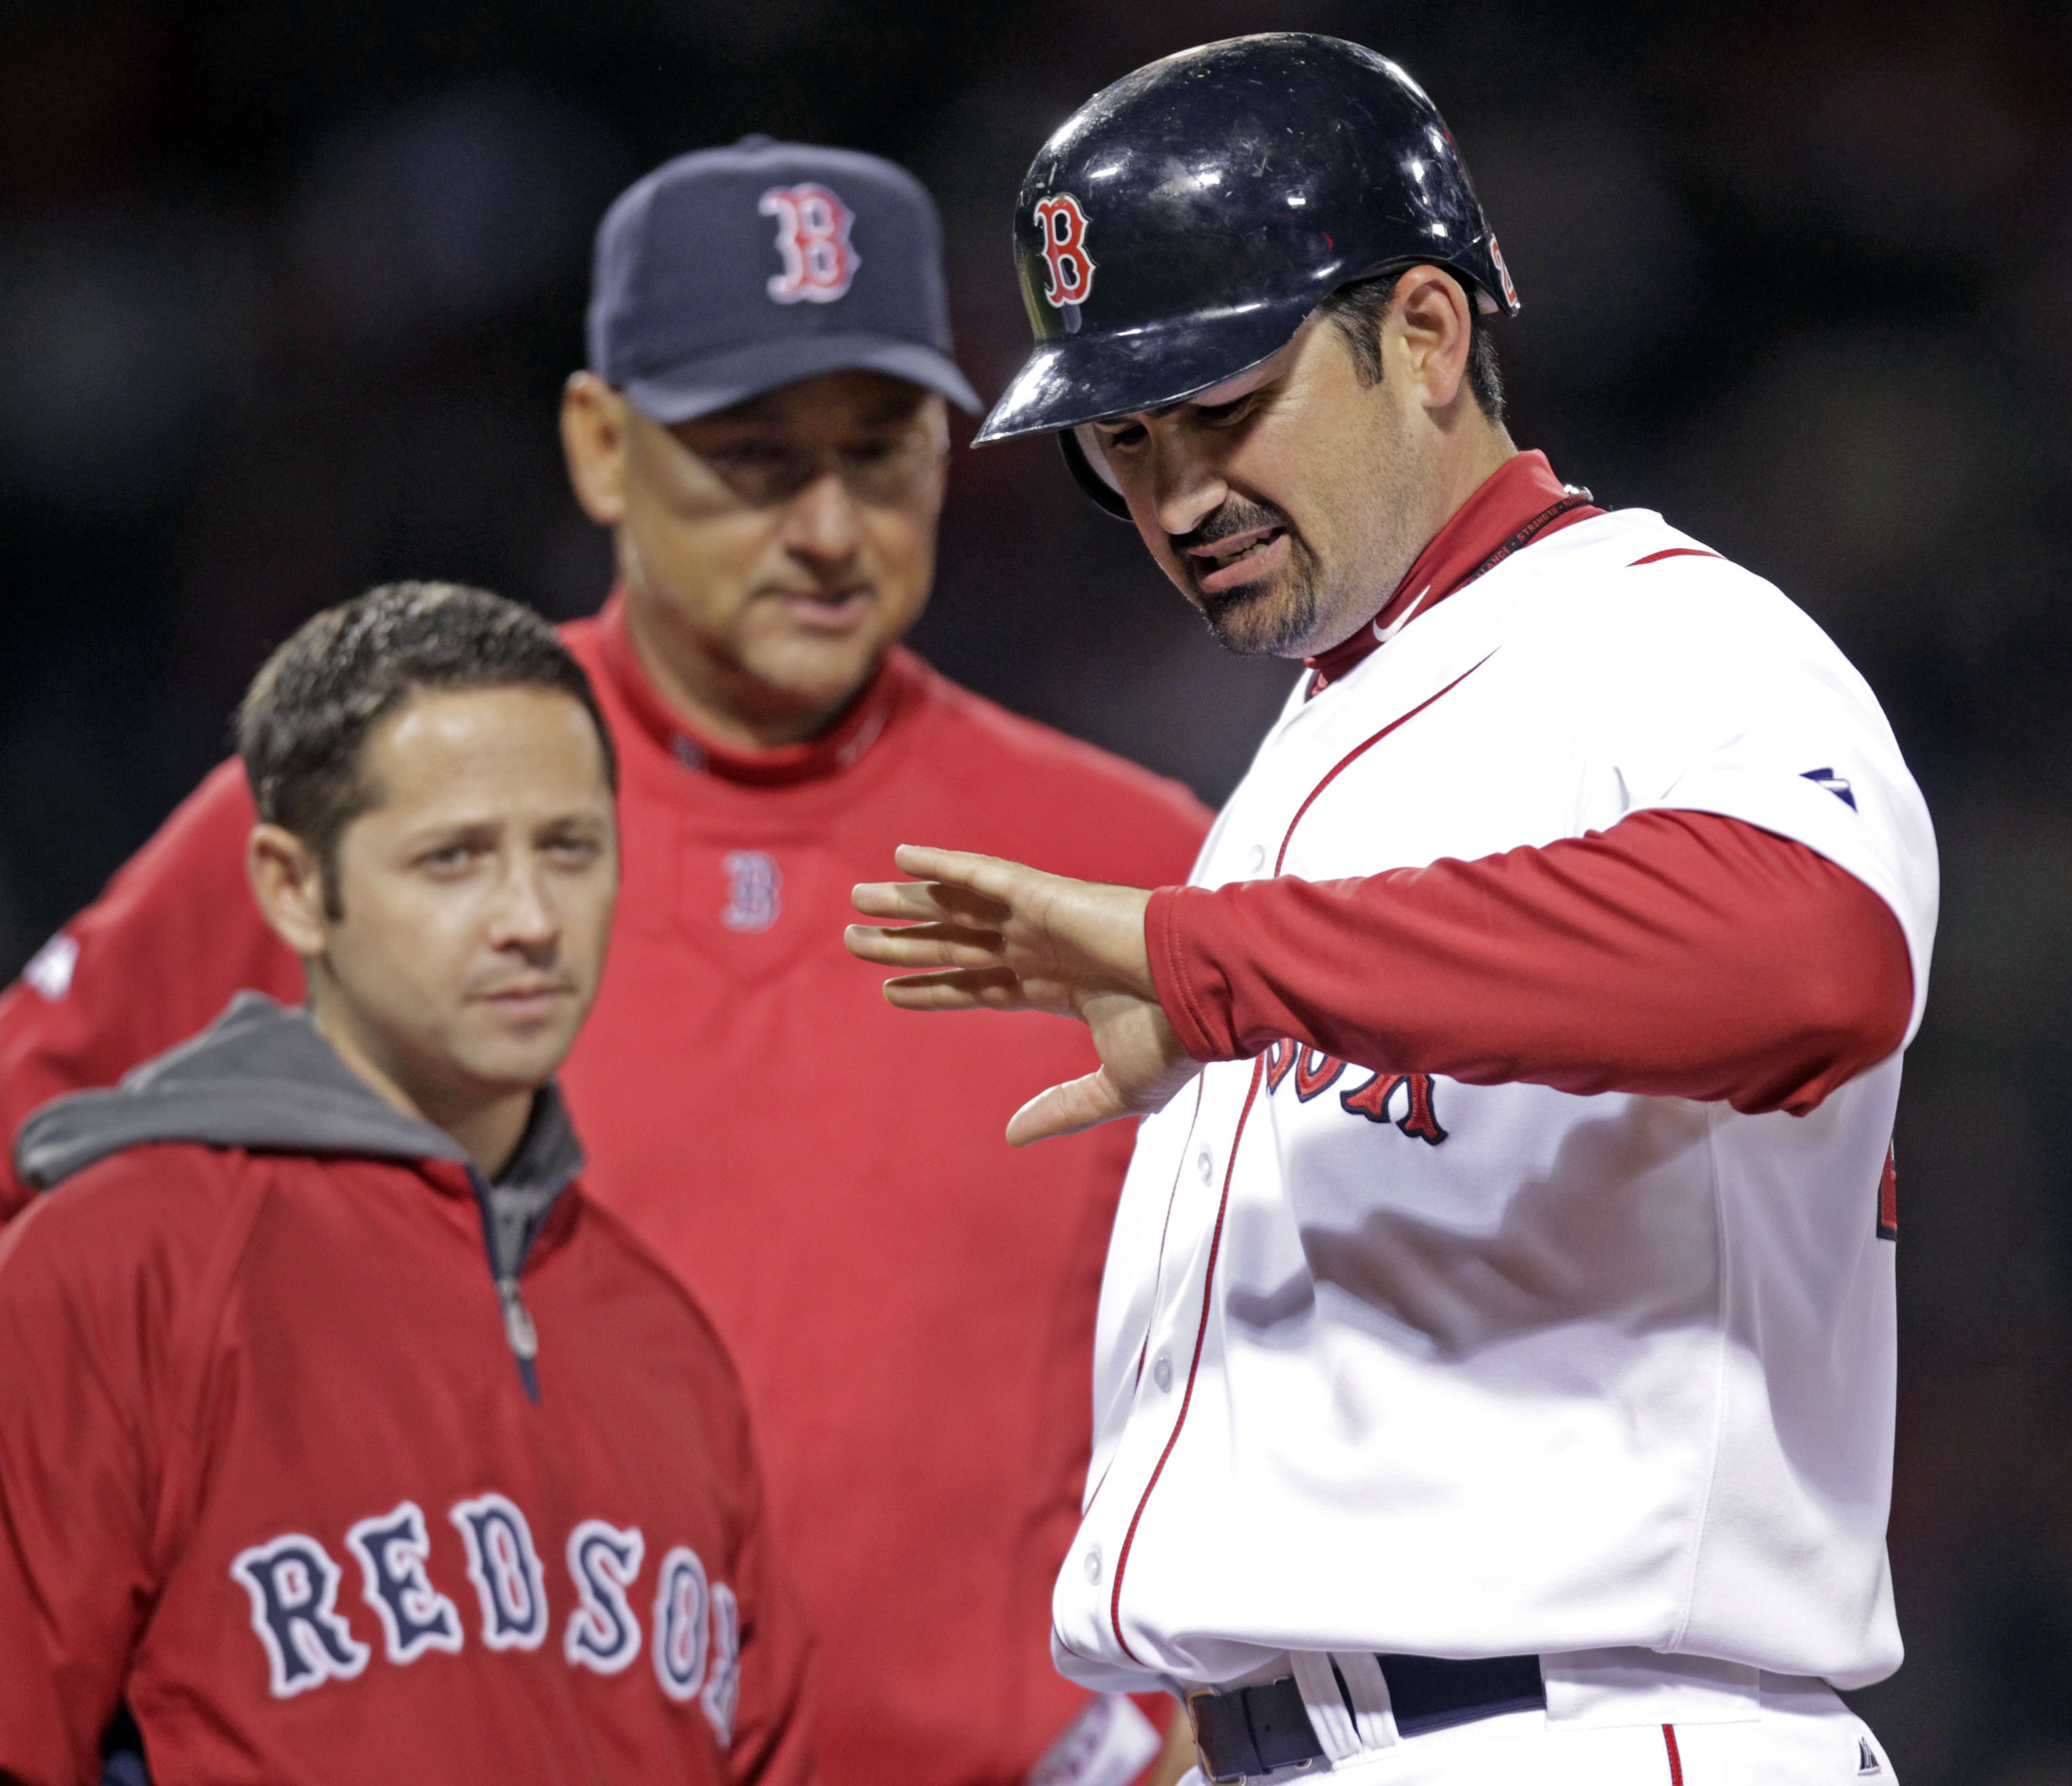 Former Red Sox trainer Mike Reinold, left, was fired by the team after last season. (Getty Images)